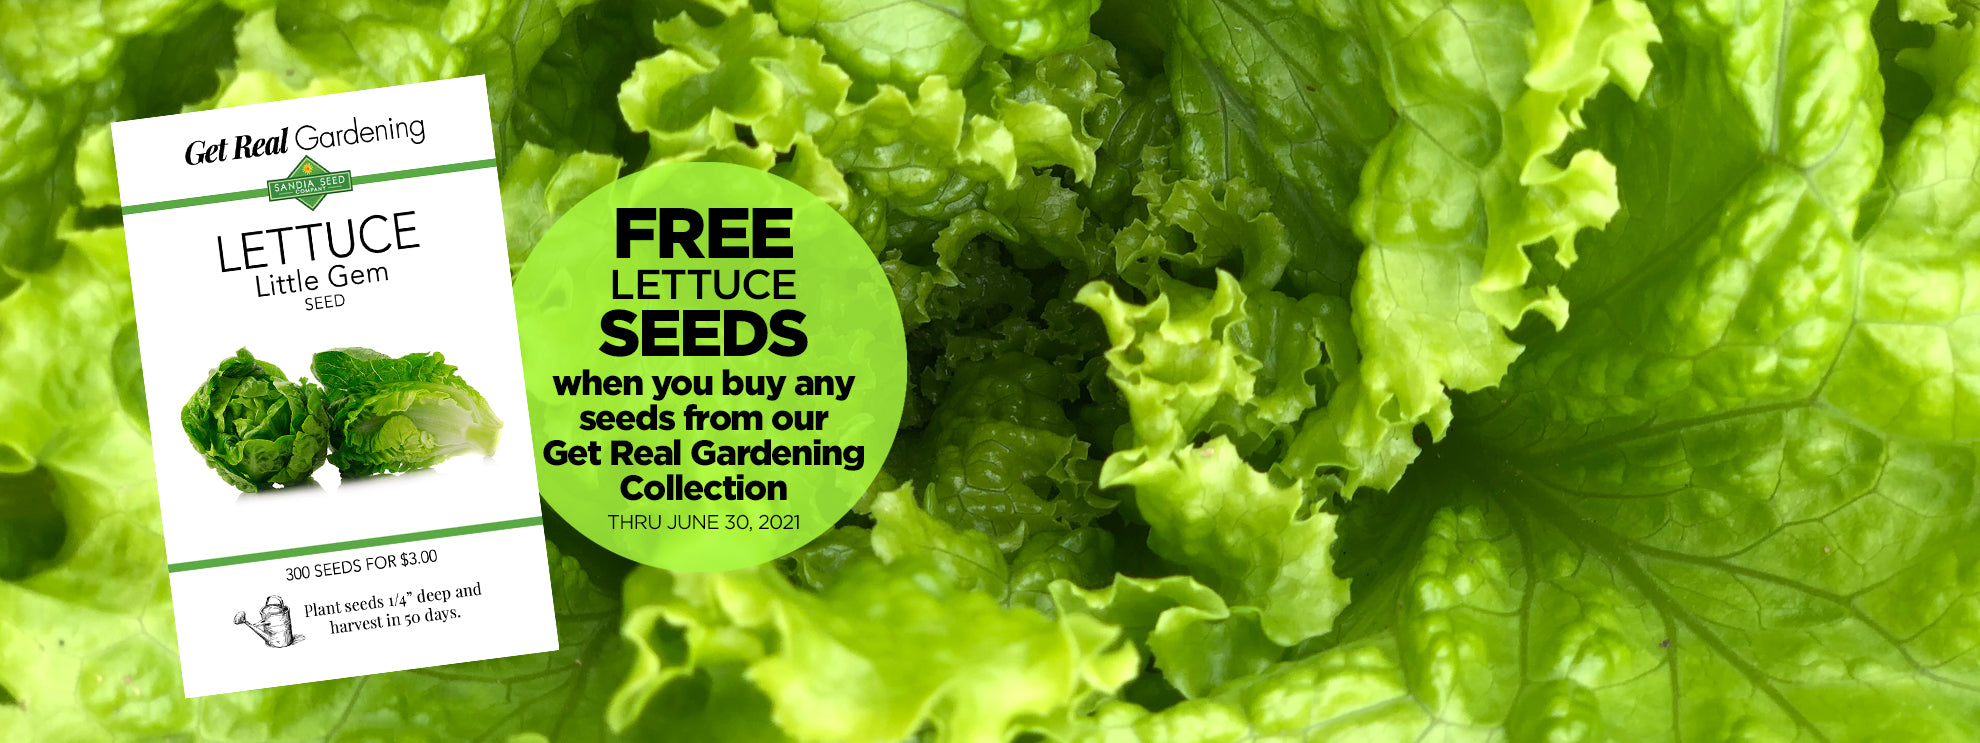 Free Lettuce Seeds from sandiaseed.com